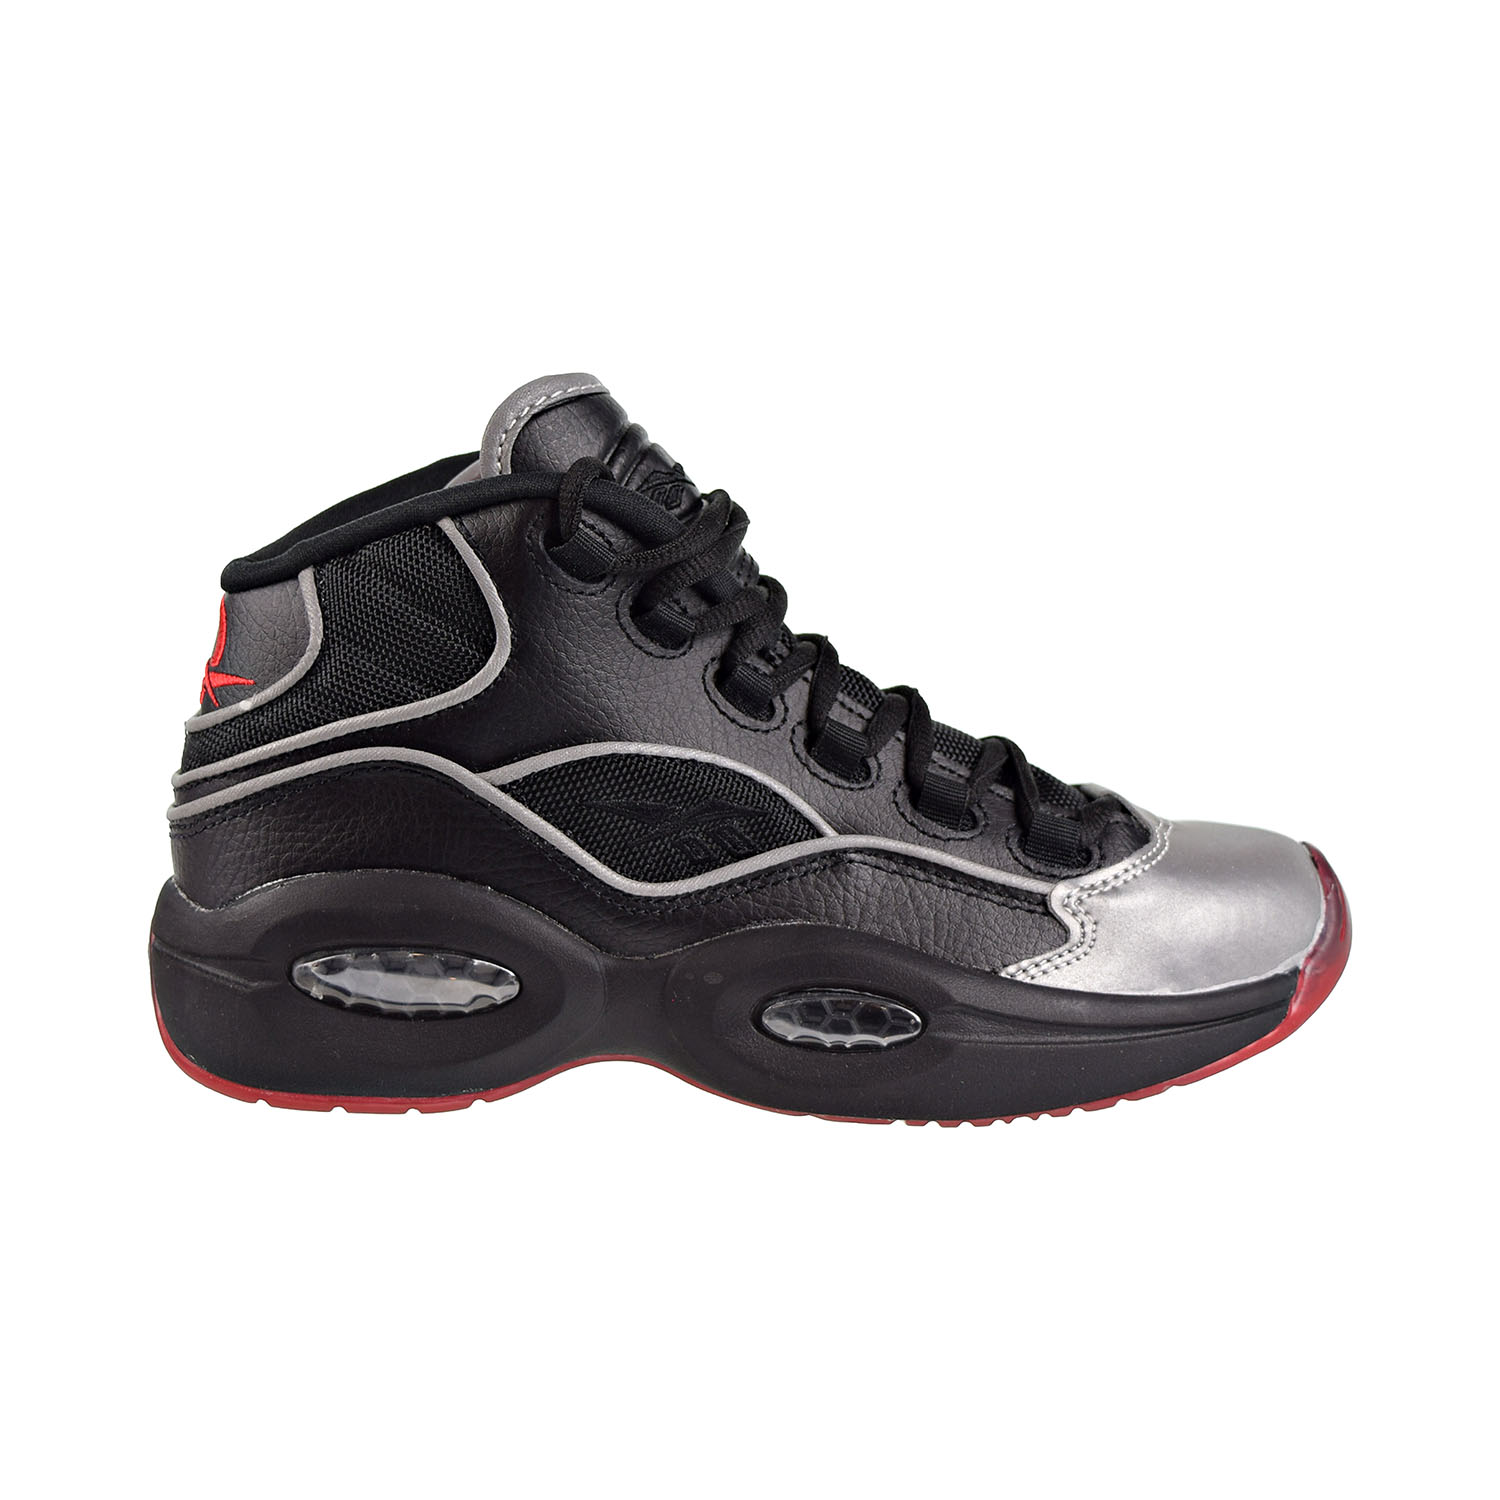 Details about Reebok Question Mid A5 Jadakiss Big Kids Shoes Black Silver Met Red BD4332